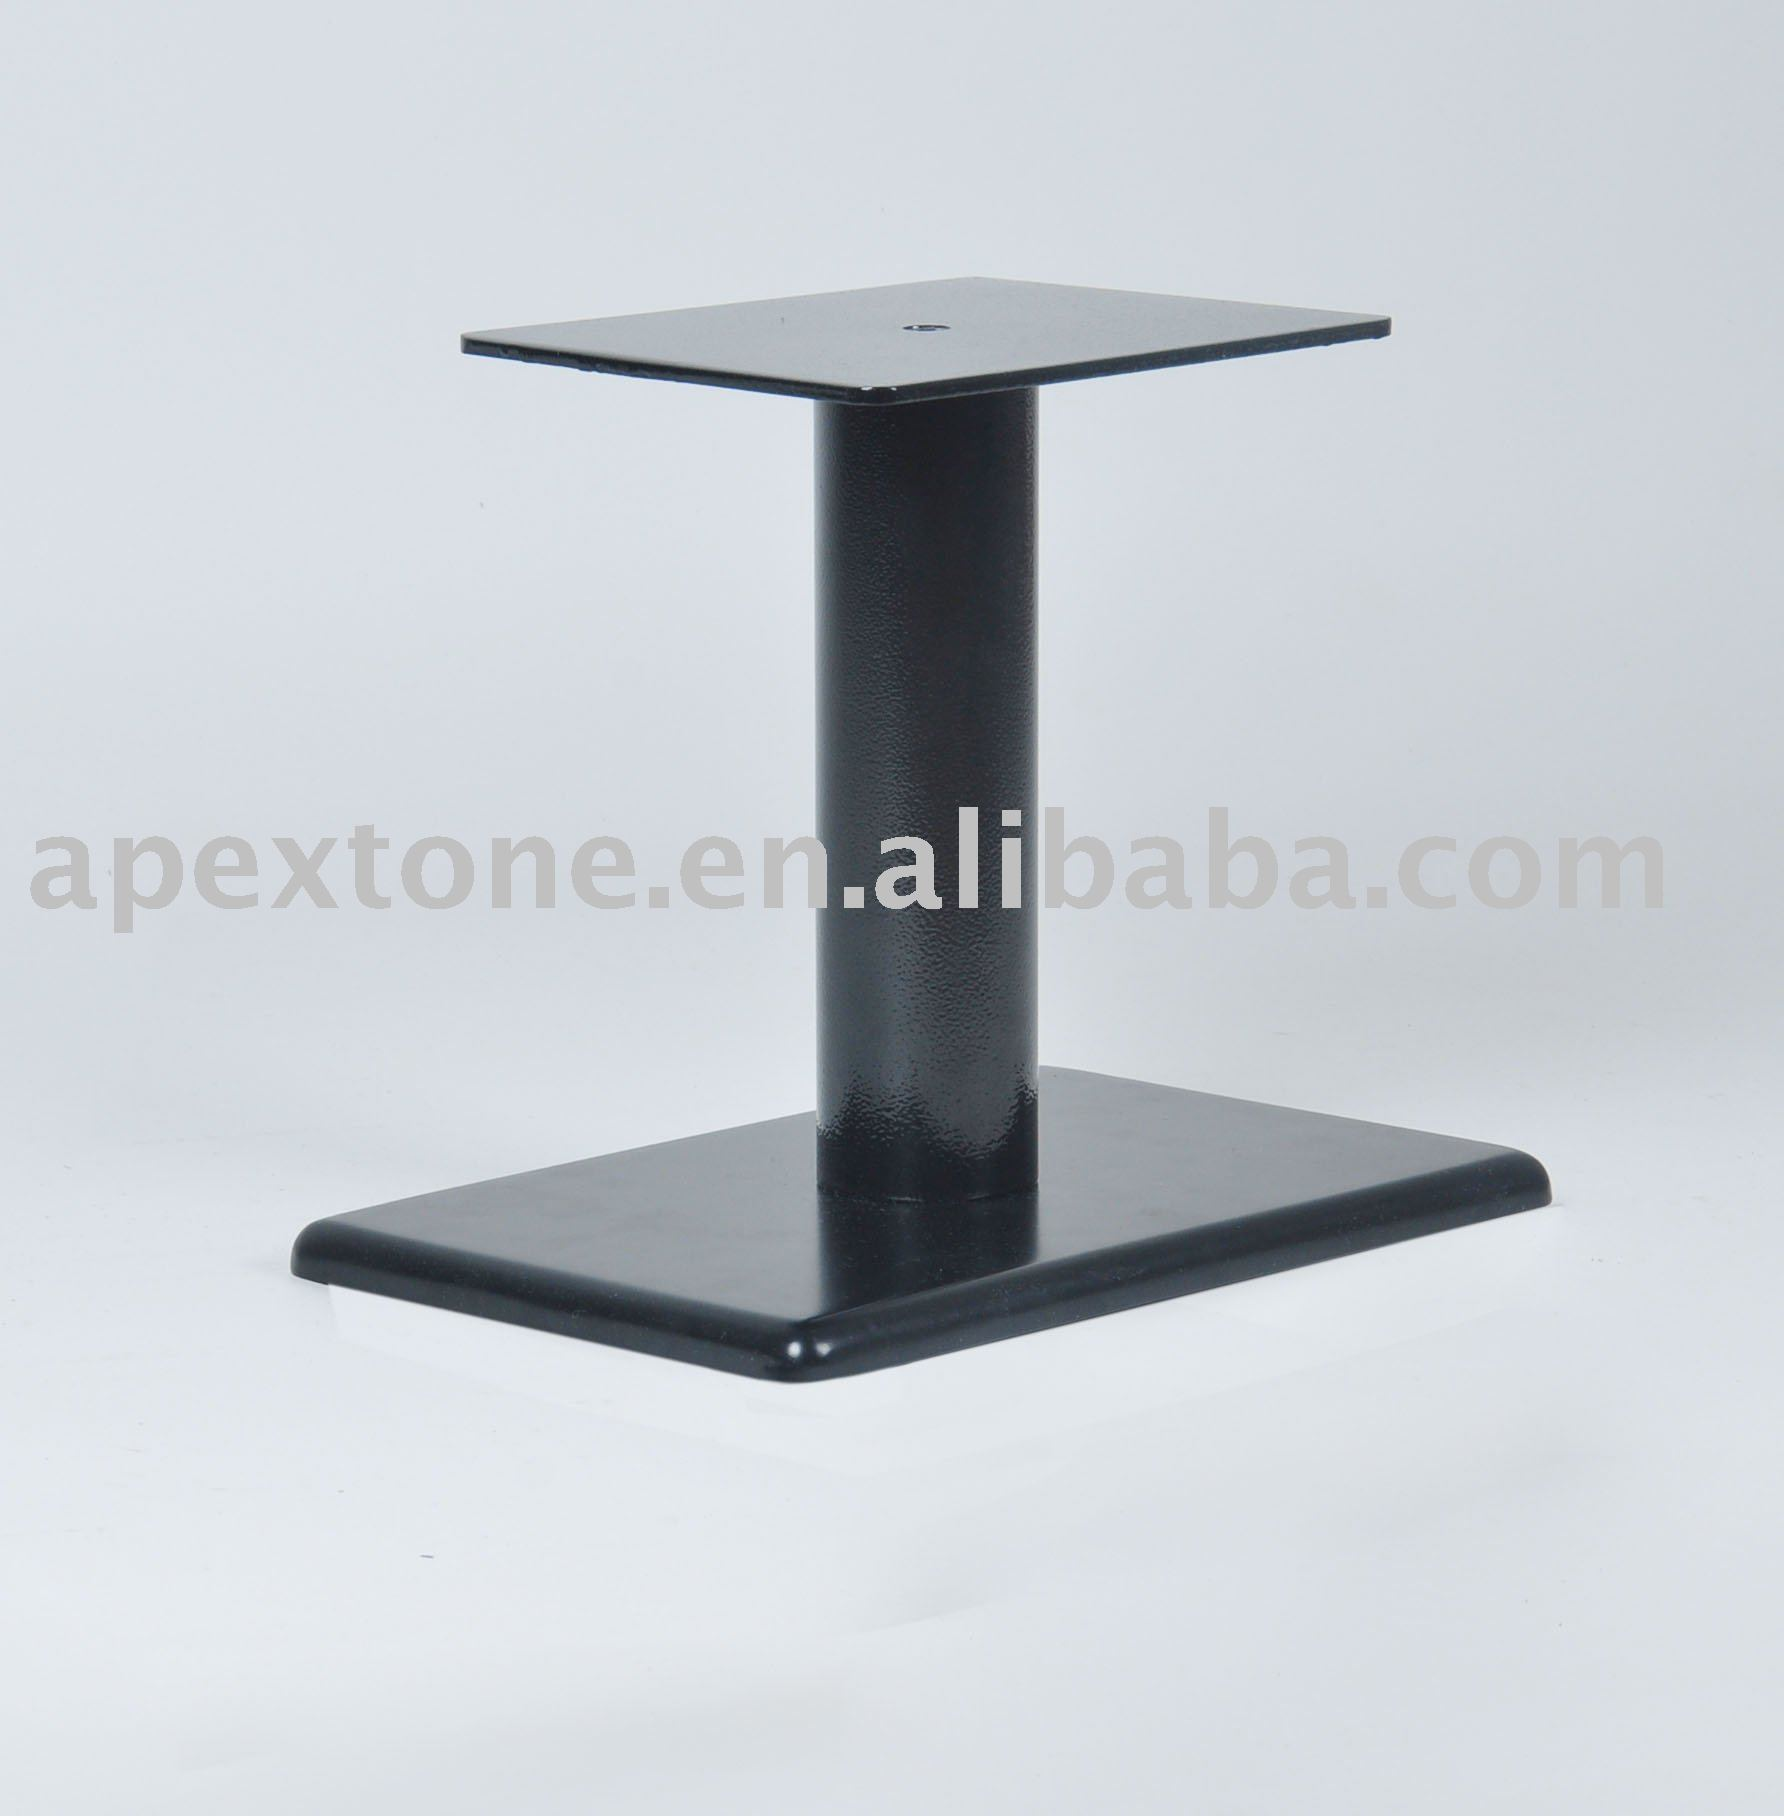 Ap-3340 Table Monitor Stand - Buy Speaker Stand,Monitor Stand,Metal ...